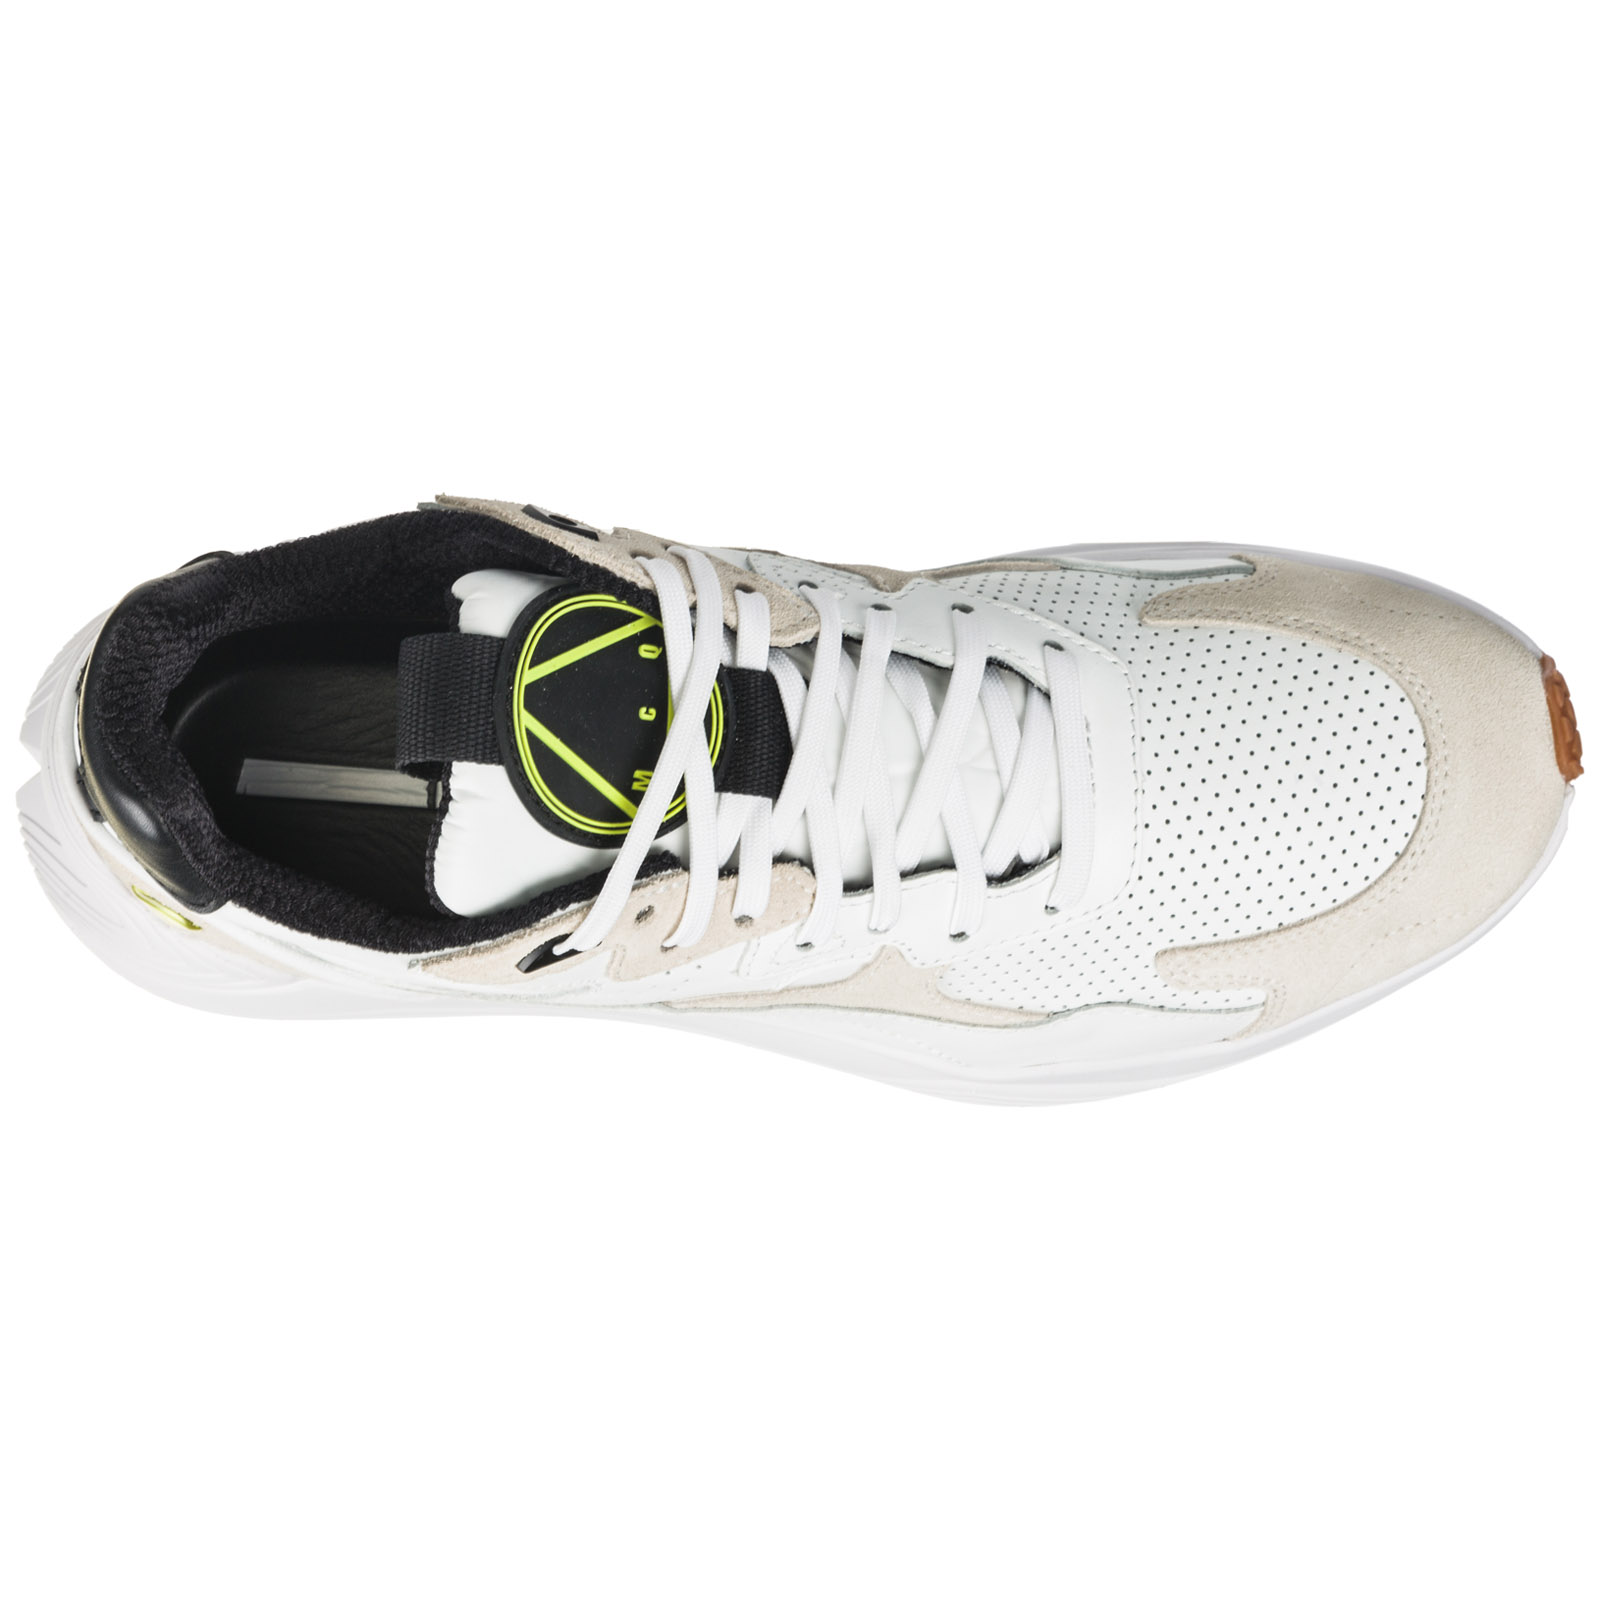 Men's shoes leather trainers sneakers daku